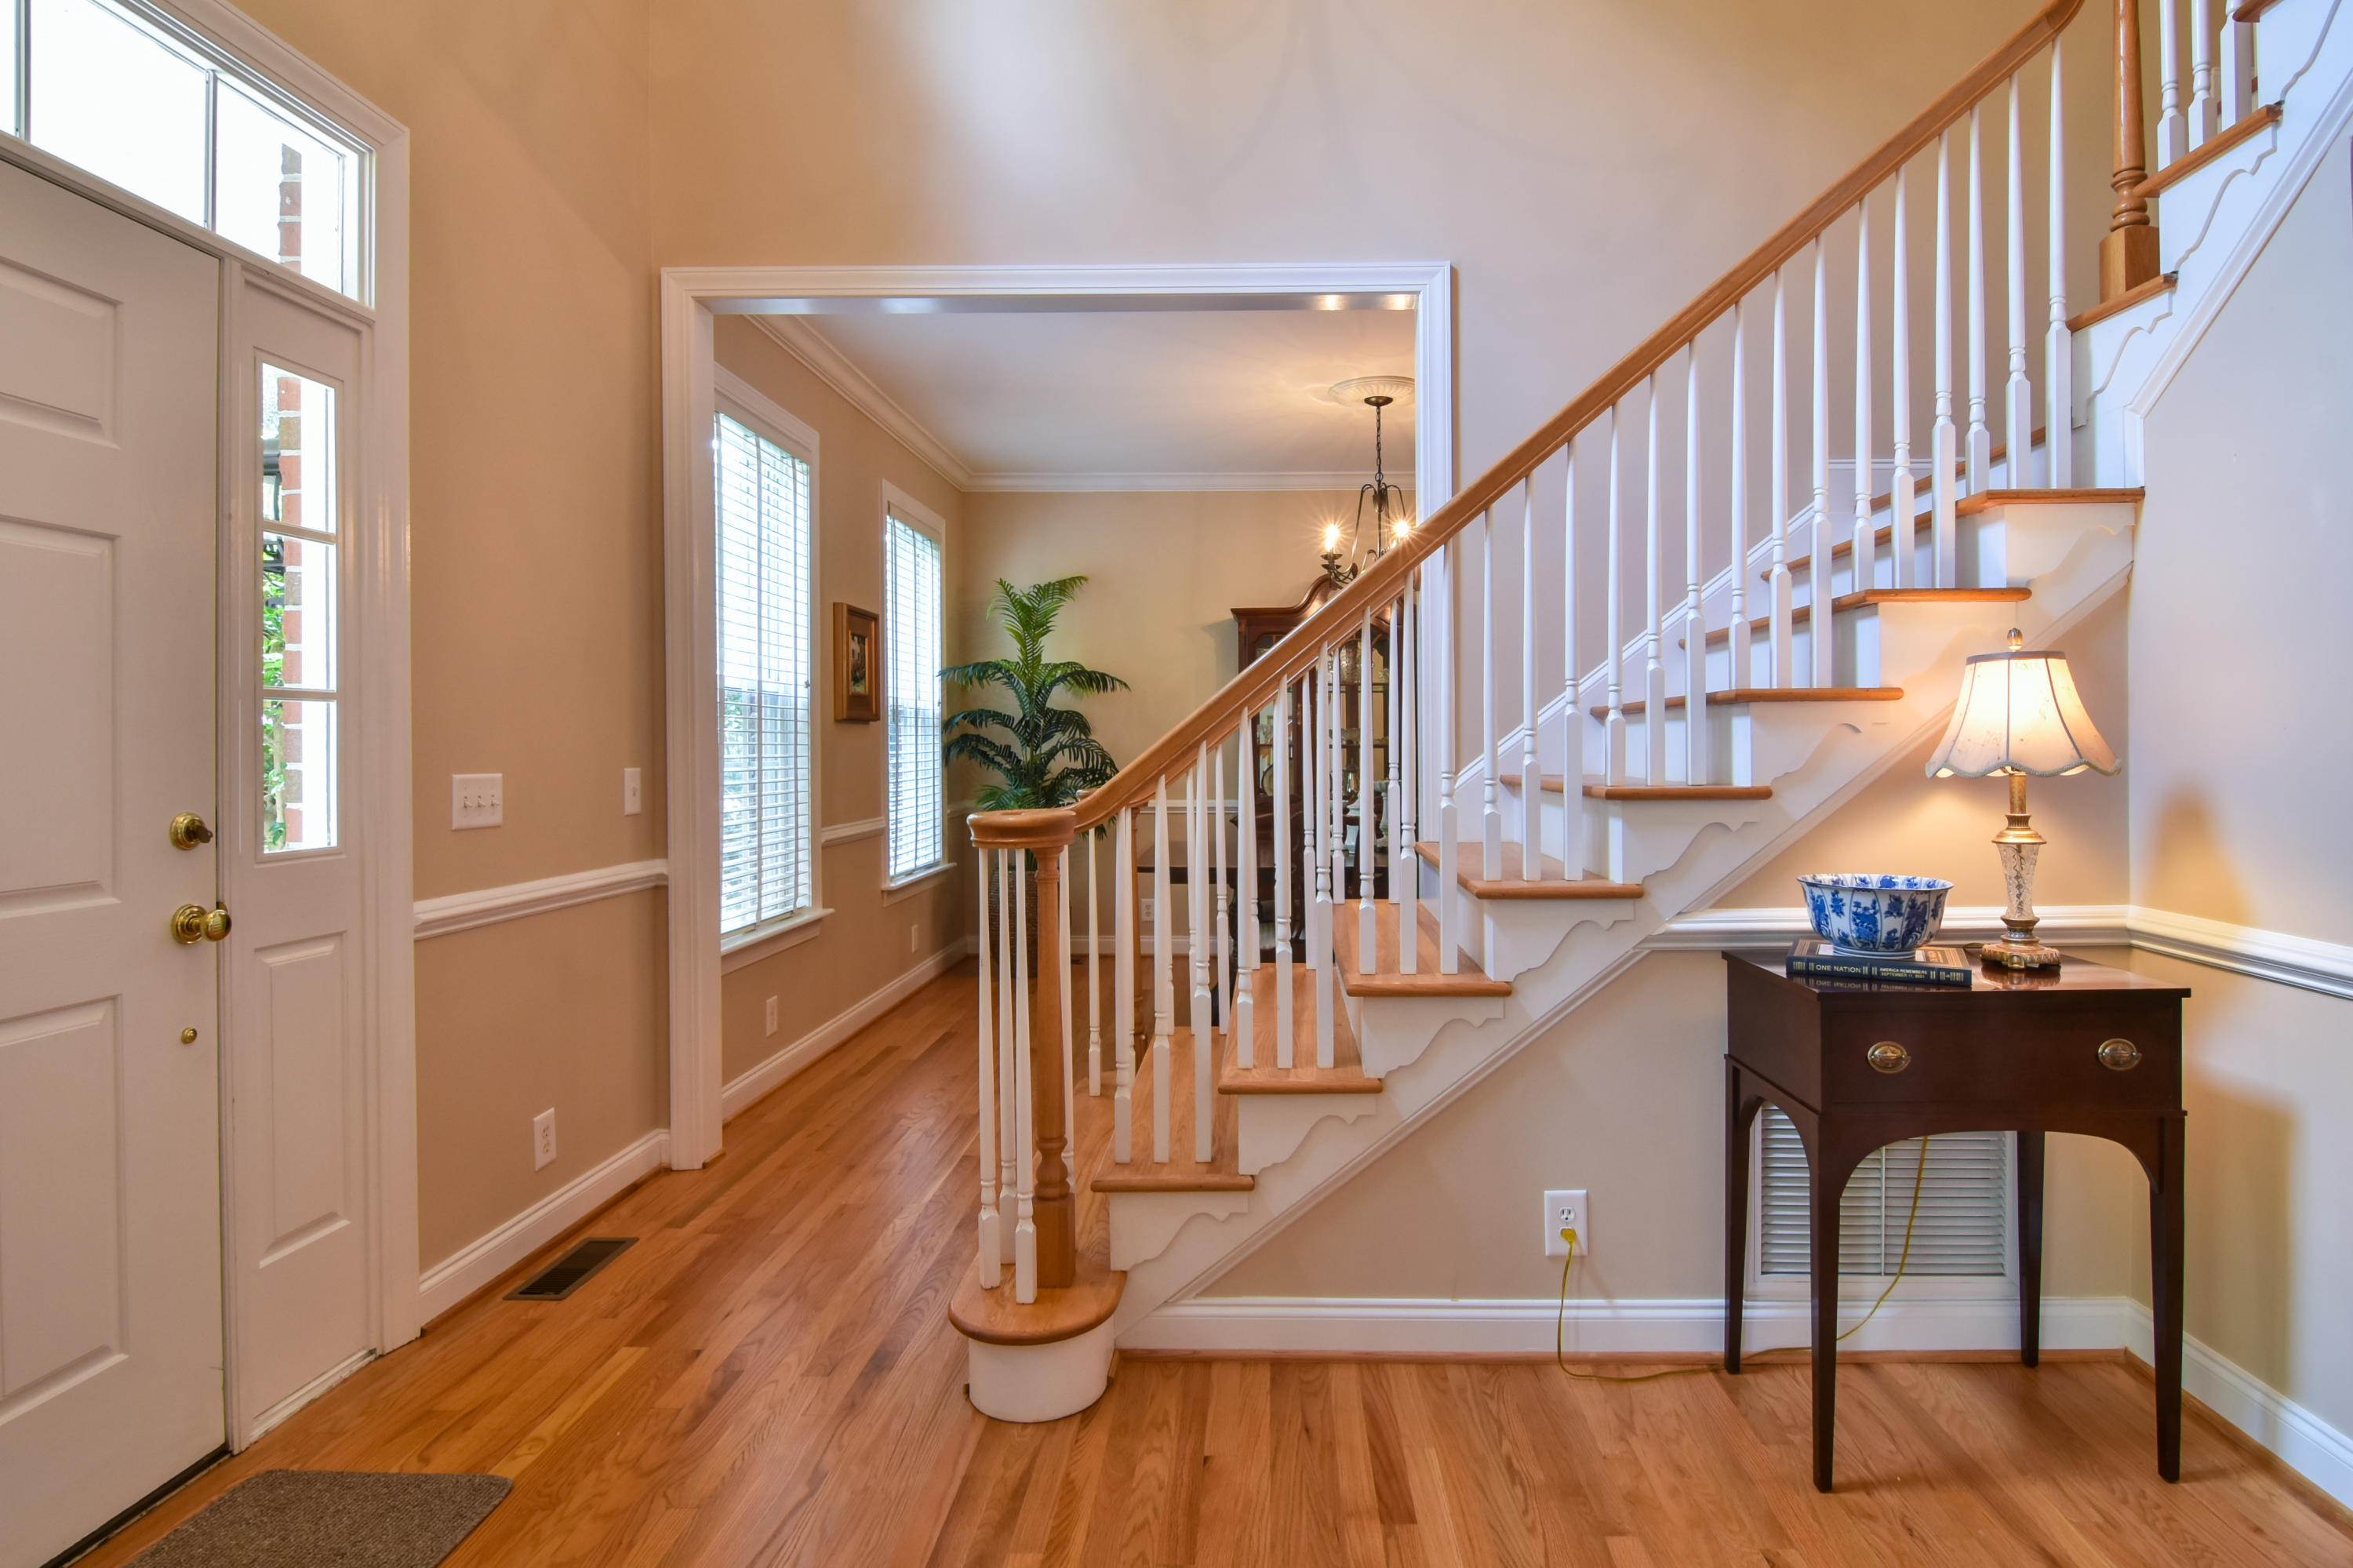 Somerset Point Homes For Sale - 690 Cain, Mount Pleasant, SC - 23